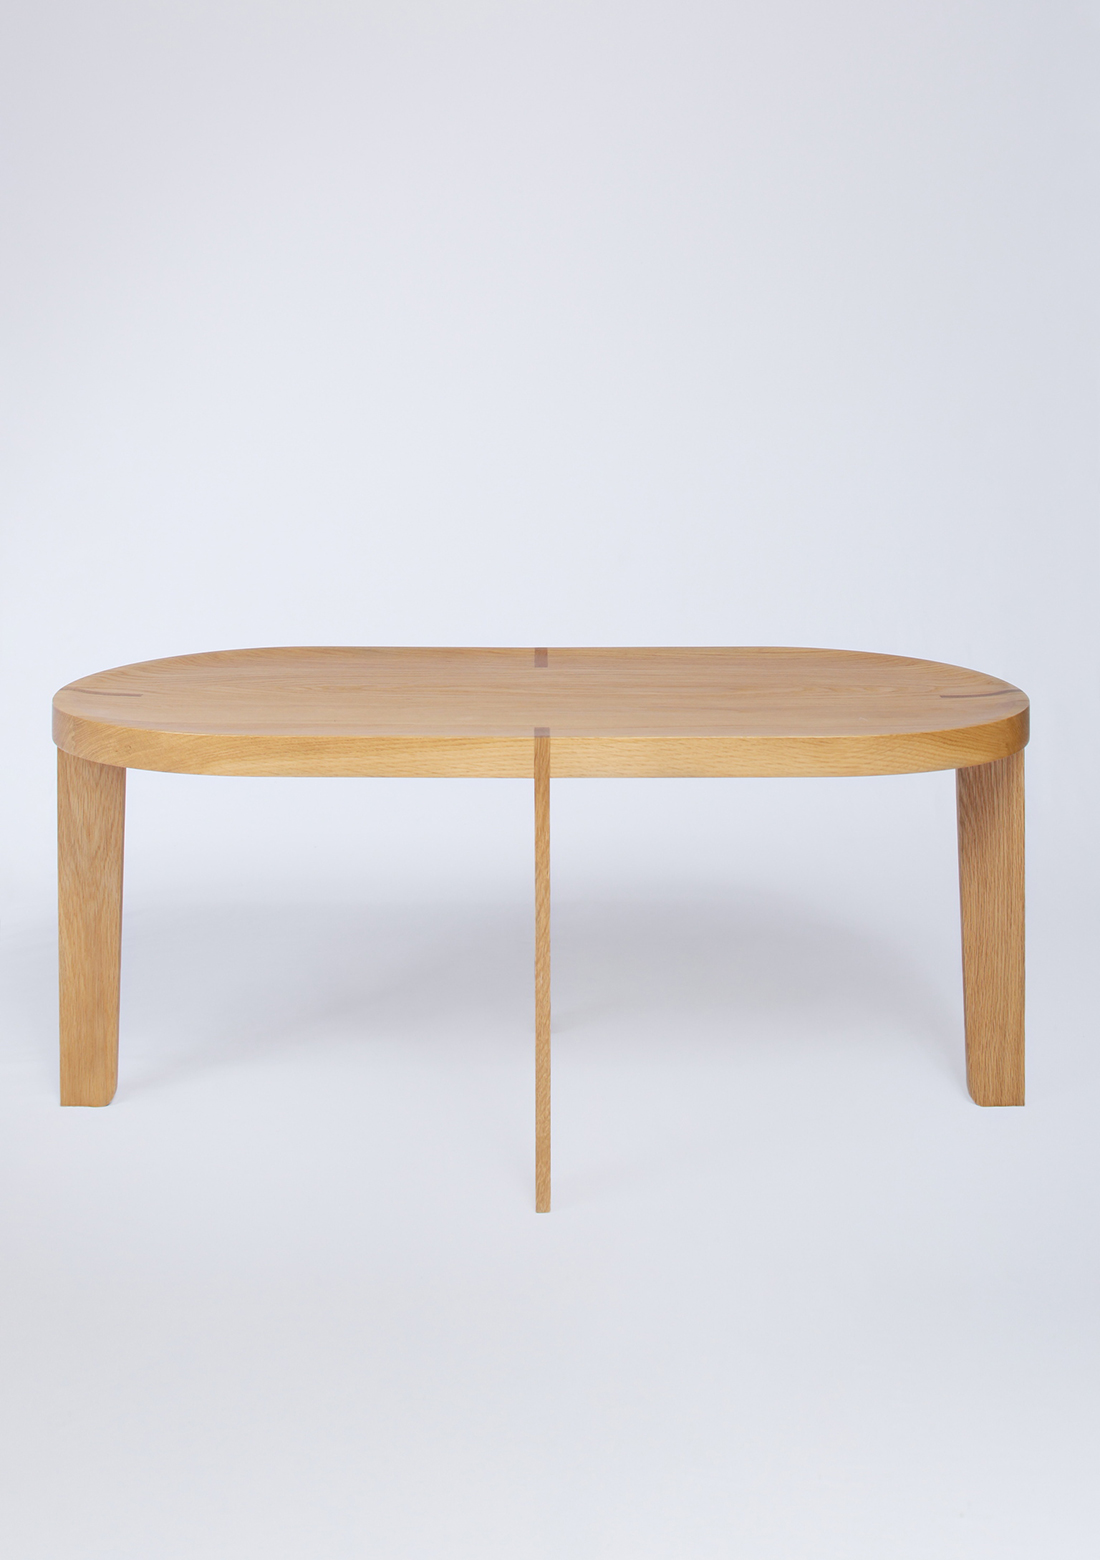 Skinny Coffee Table, Folks 3.0 by Nathan Yong